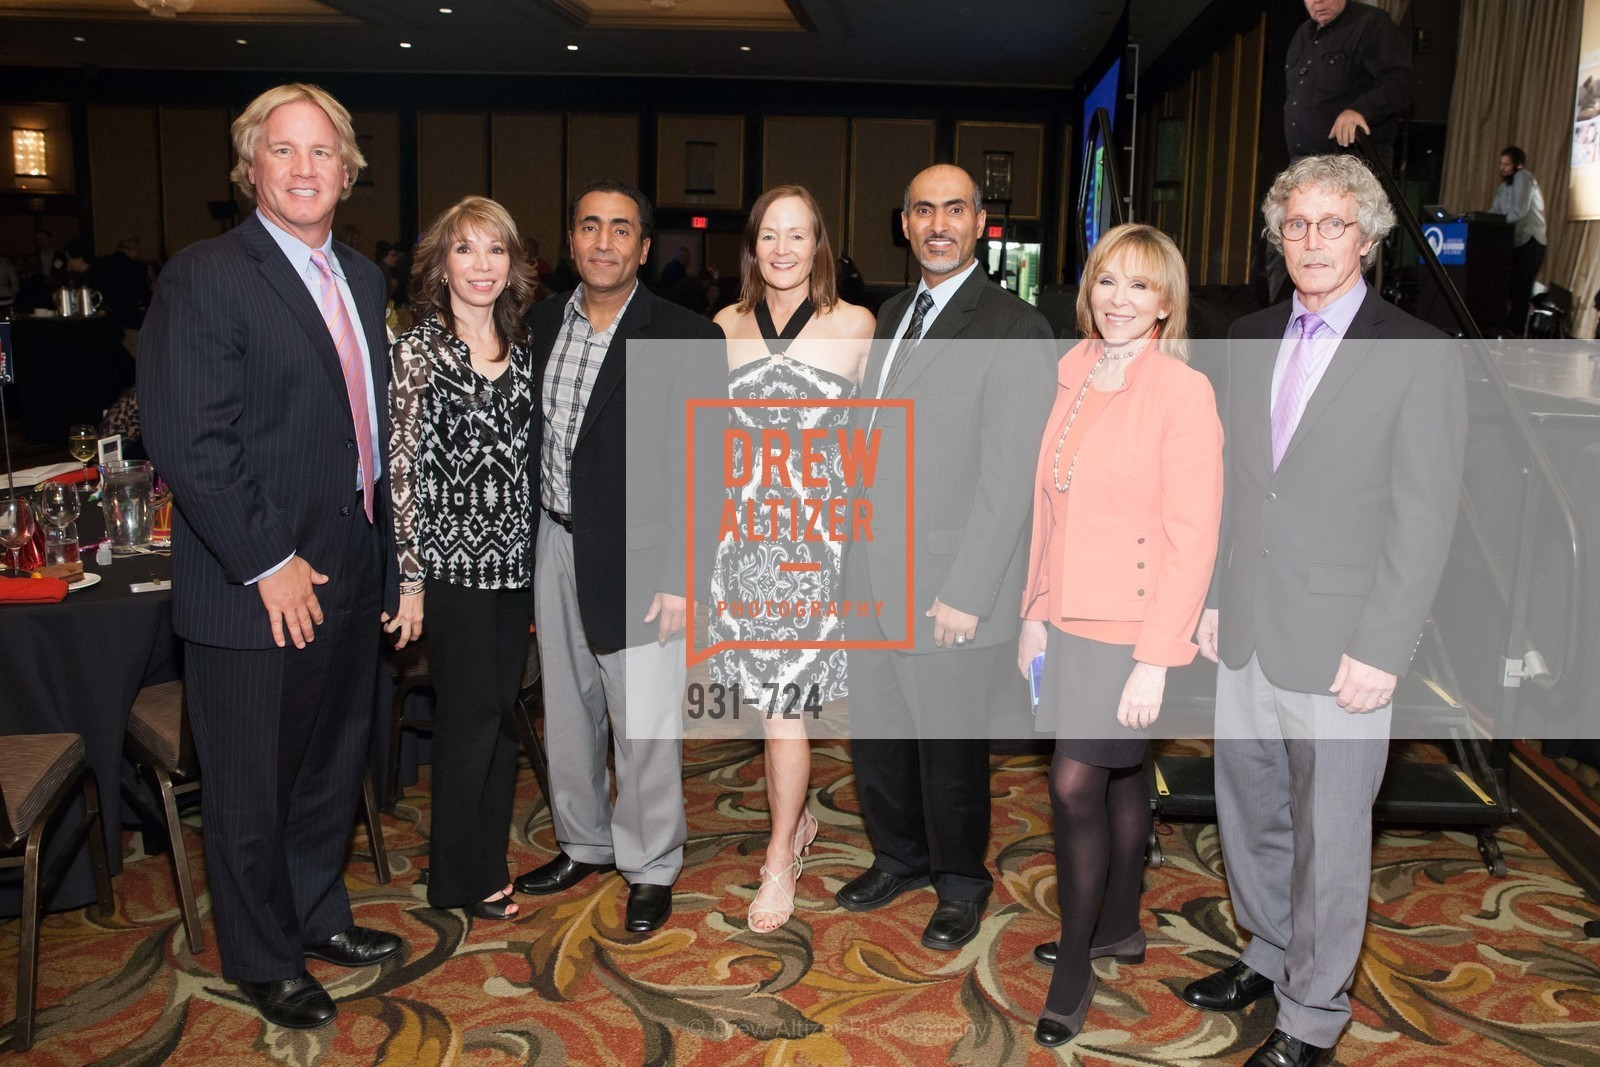 Rick Pettibone, Sheila Radman, Fadal Radman, Noreen Beiro, Walid Radman, Cheryl Jennings, Steve Tenets, TNDC's 34th Annual Birthday Dinner, US, May 13th, 2015,Drew Altizer, Drew Altizer Photography, full-service agency, private events, San Francisco photographer, photographer california